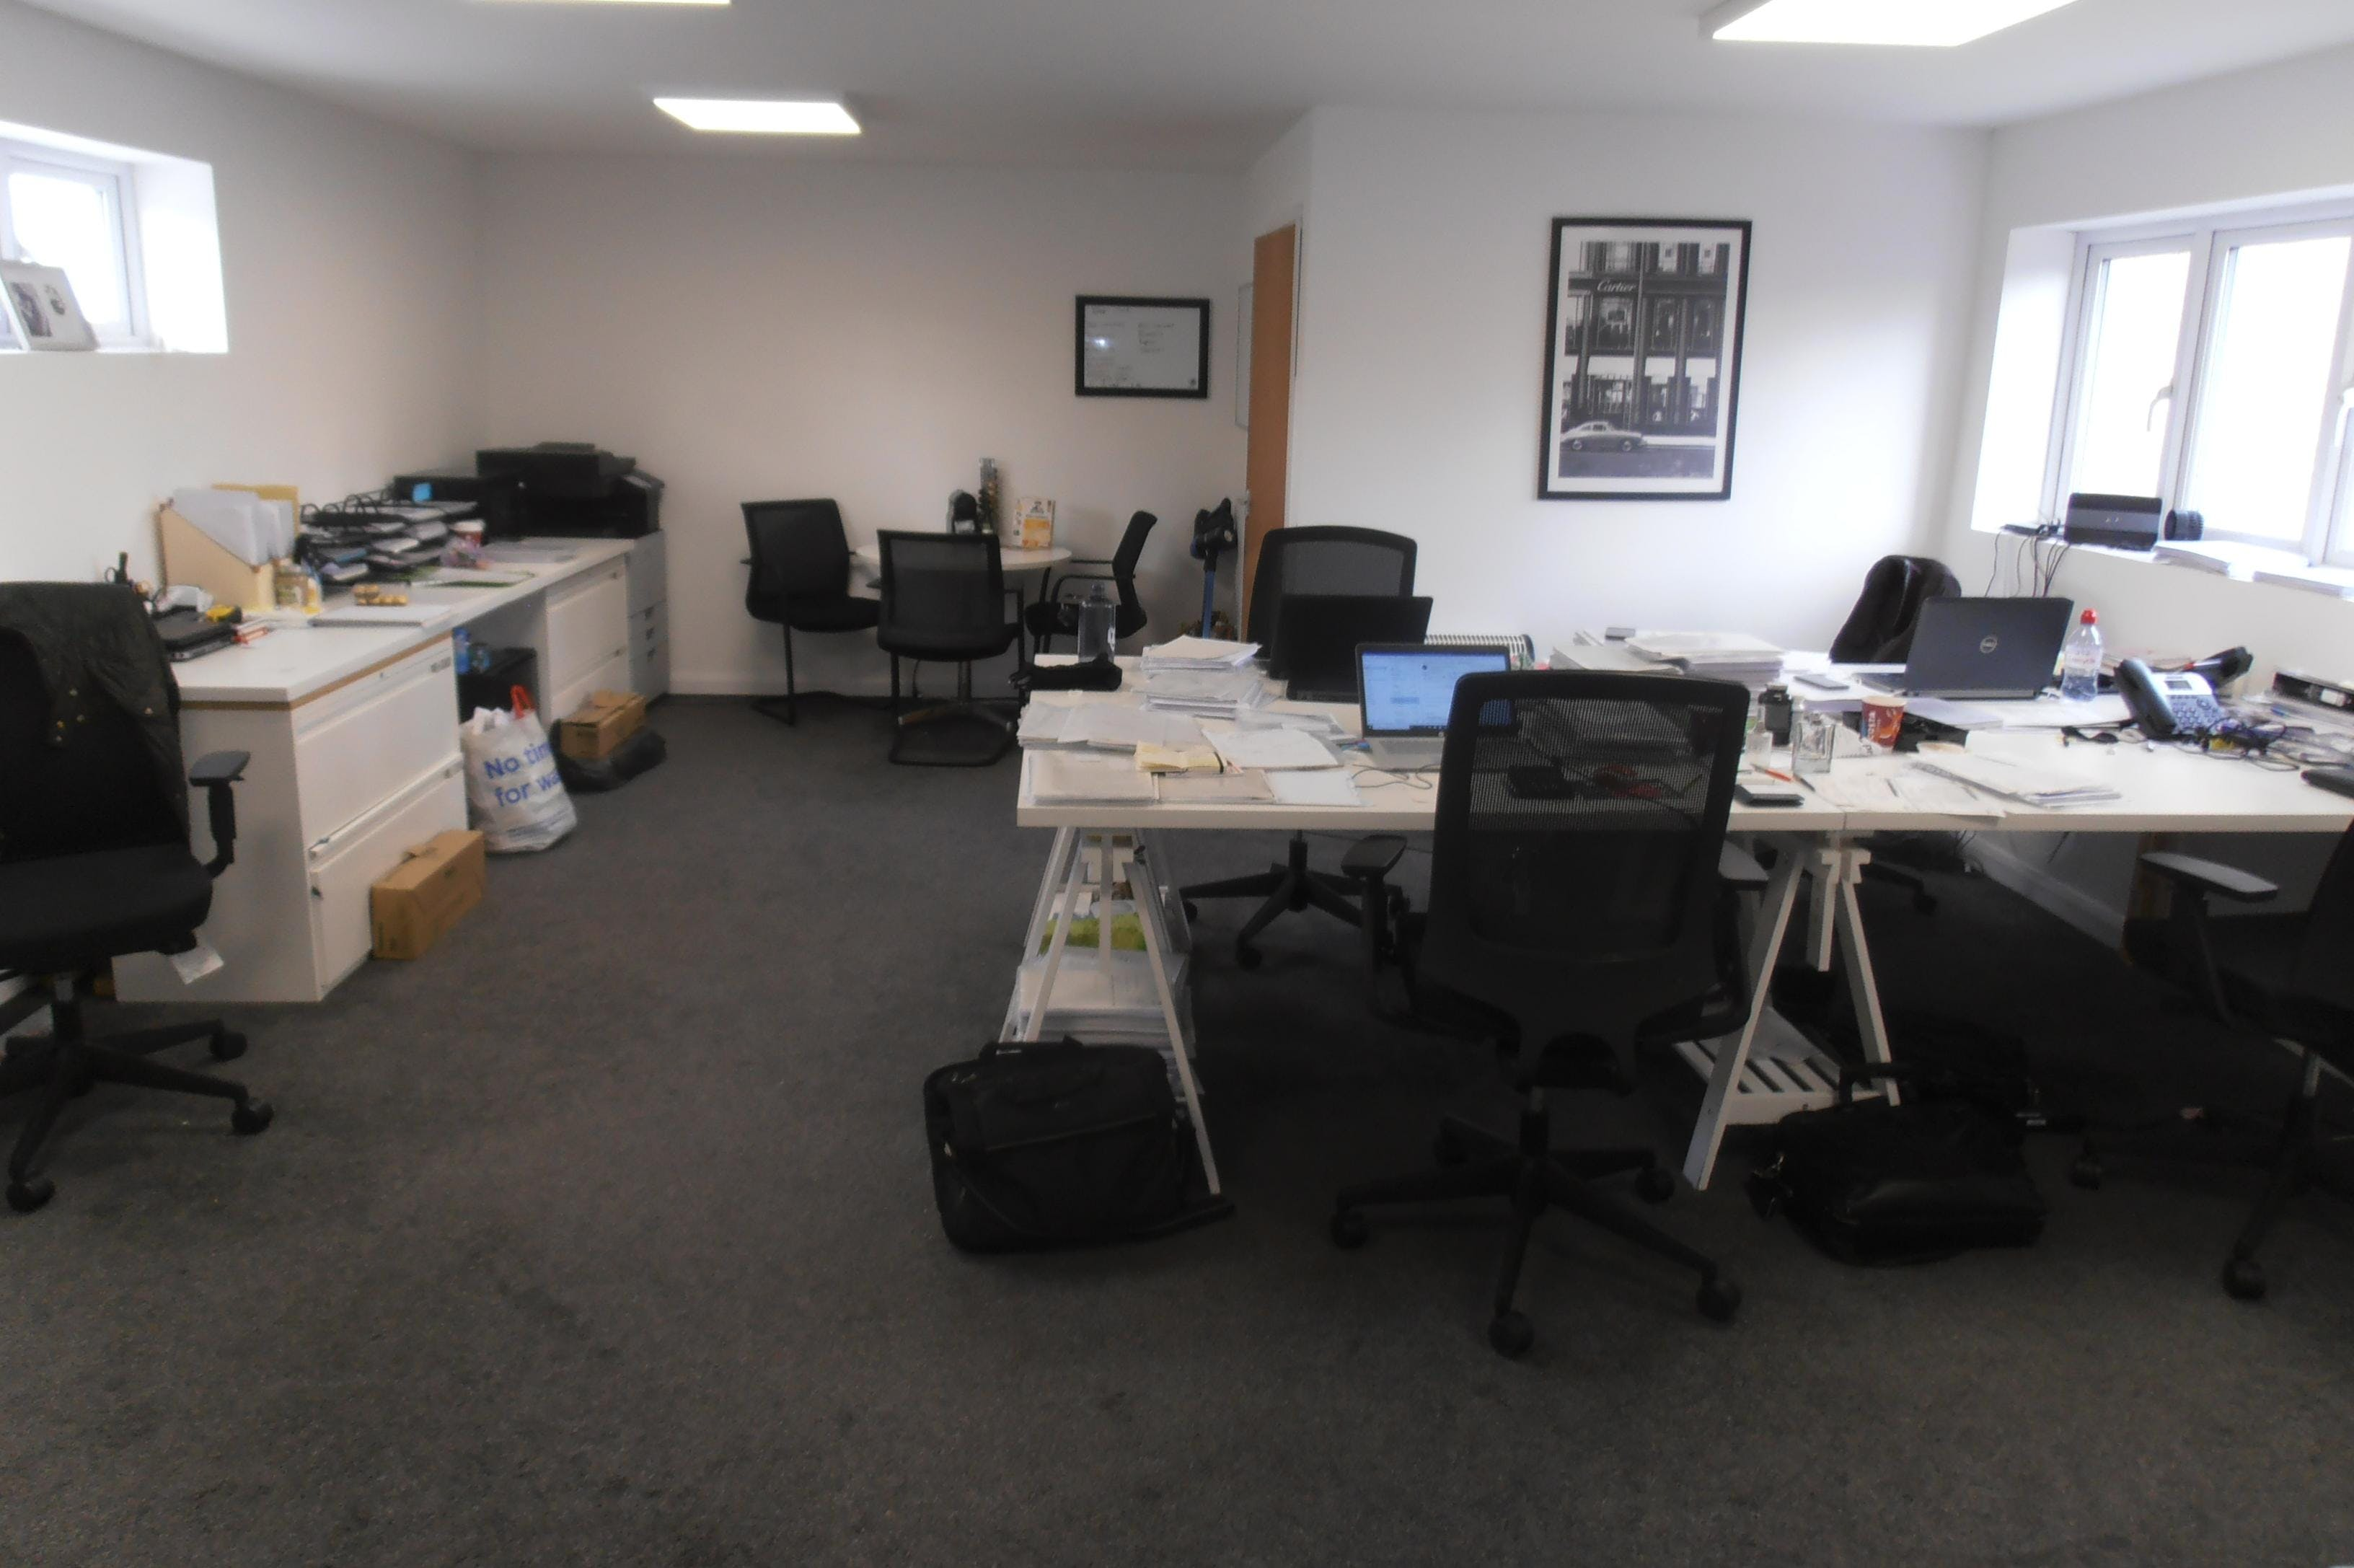 83A London Road, Romford, Offices To Let - London_Road_Romford_Offices_Essex_Havering_To_Let.JPG